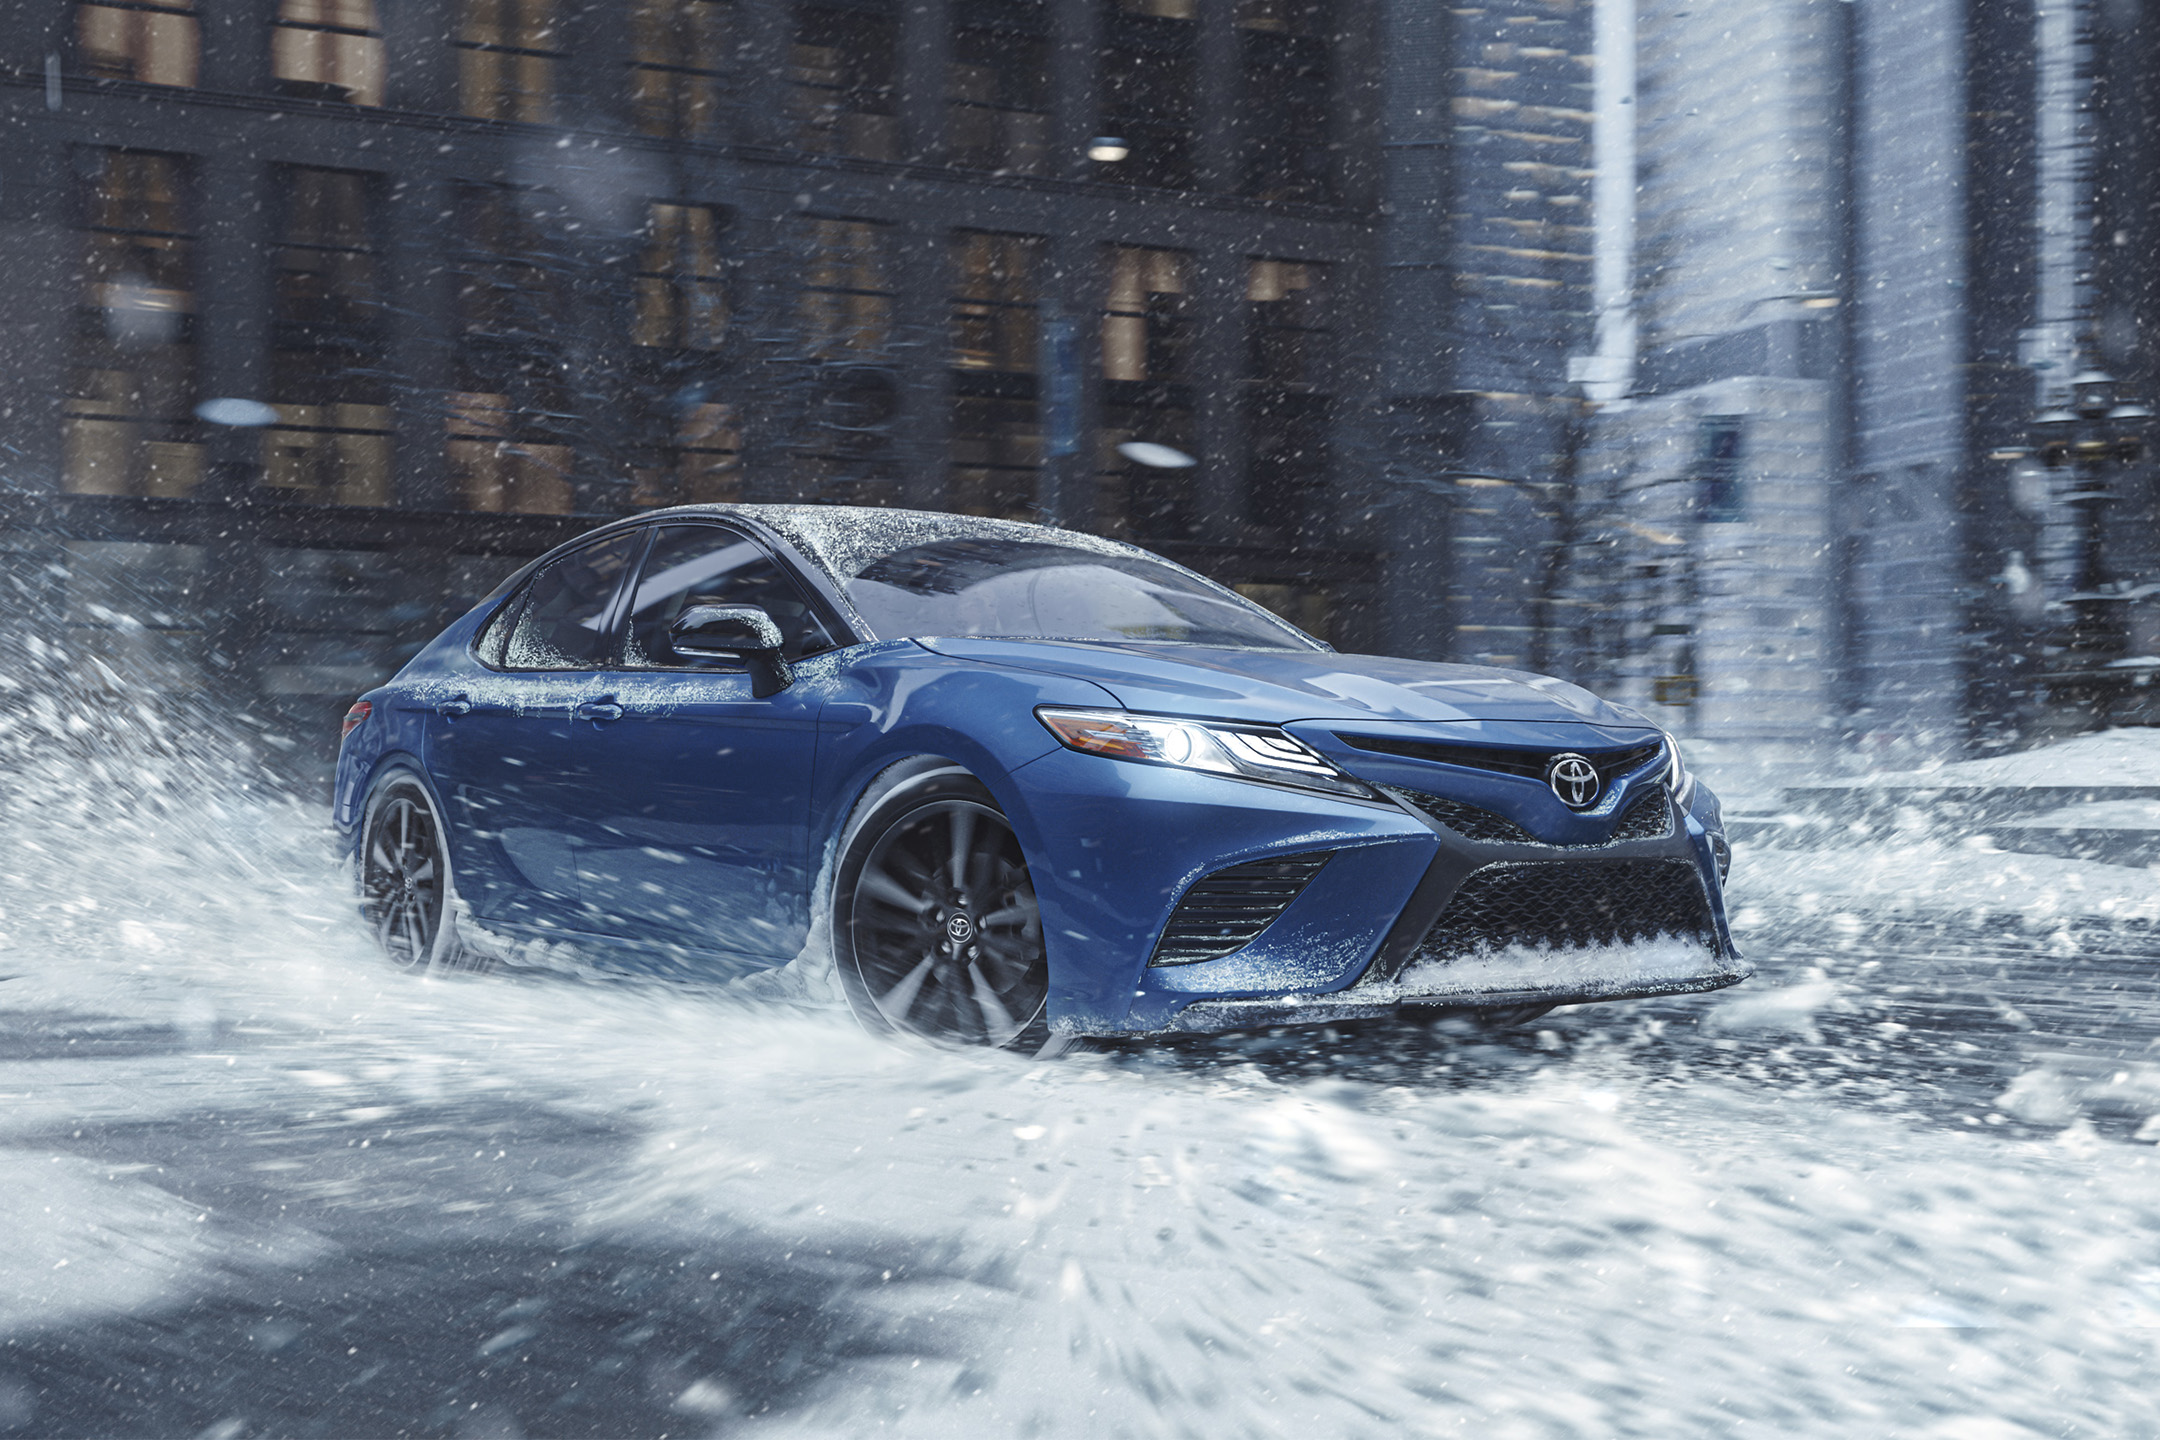 Toyota Seeks More Traction for Sedans With All-Wheel-Drive Camry and Avalon